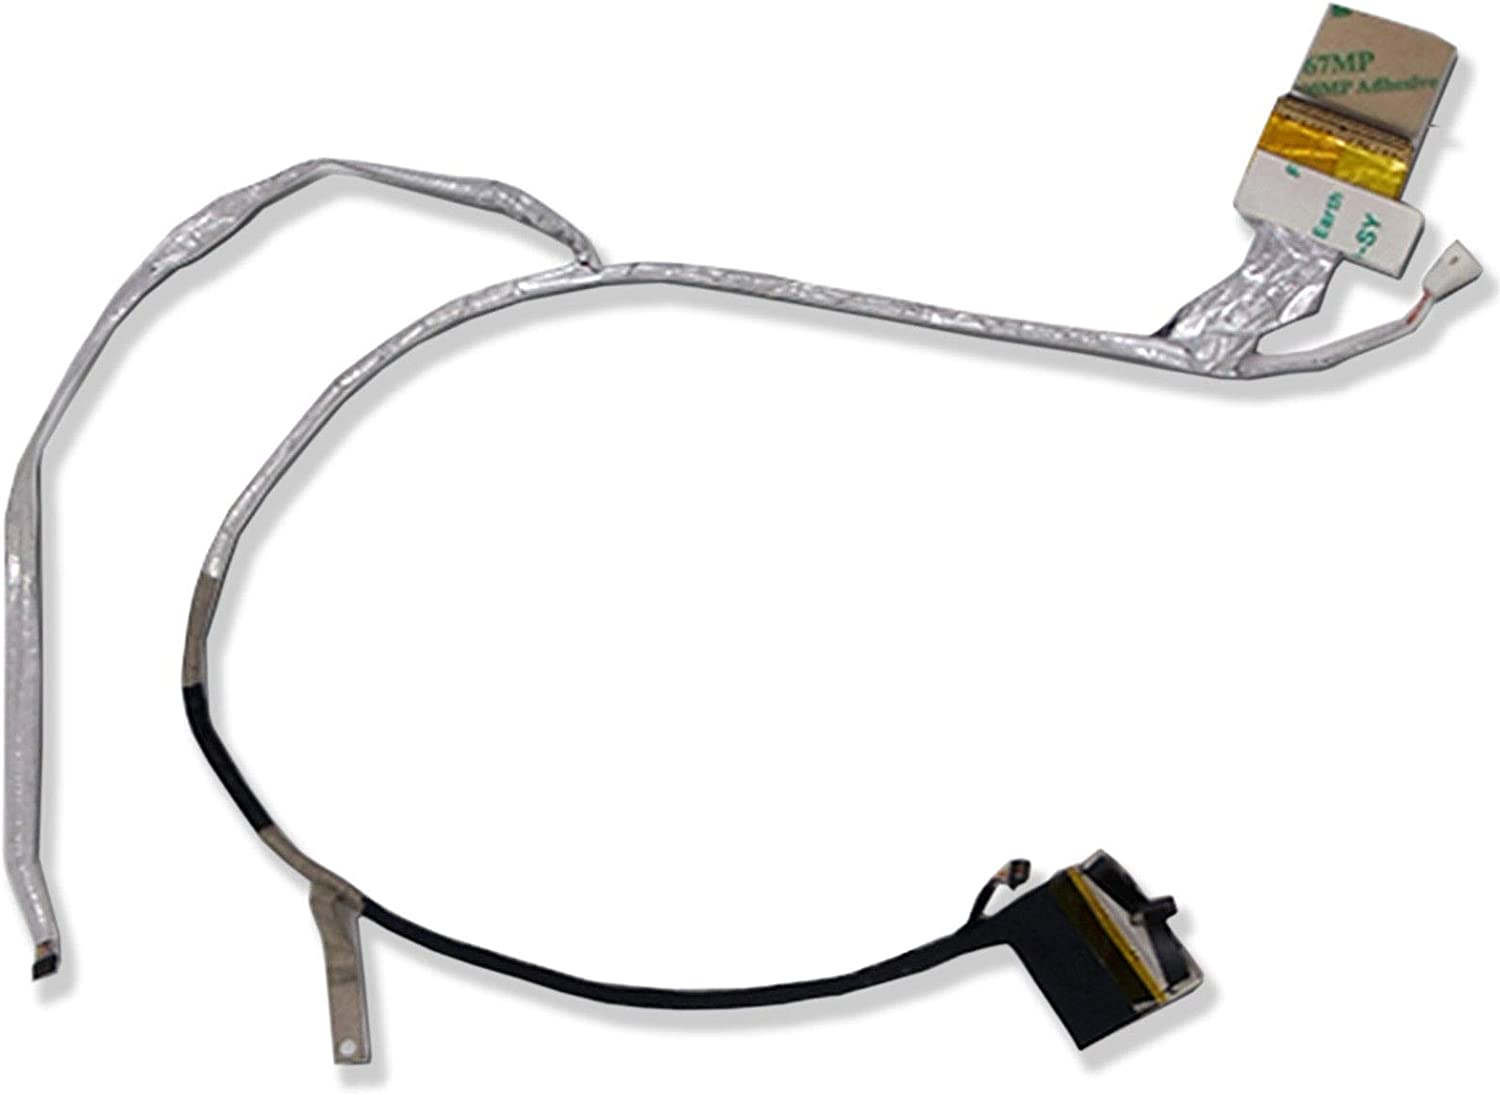 CAQL LCD LED Screen Video Flex Cable for HP Pavilion DV6-6104NR DV6-6106NR DV6-6111NR DV6-6112NR DV6-6116NR DV6-6118NR DV6-6123NR DV6-6126NR DV6-6128NR DV6-6136NR DV6T-6000 DV6T-6100 DV6T-6200